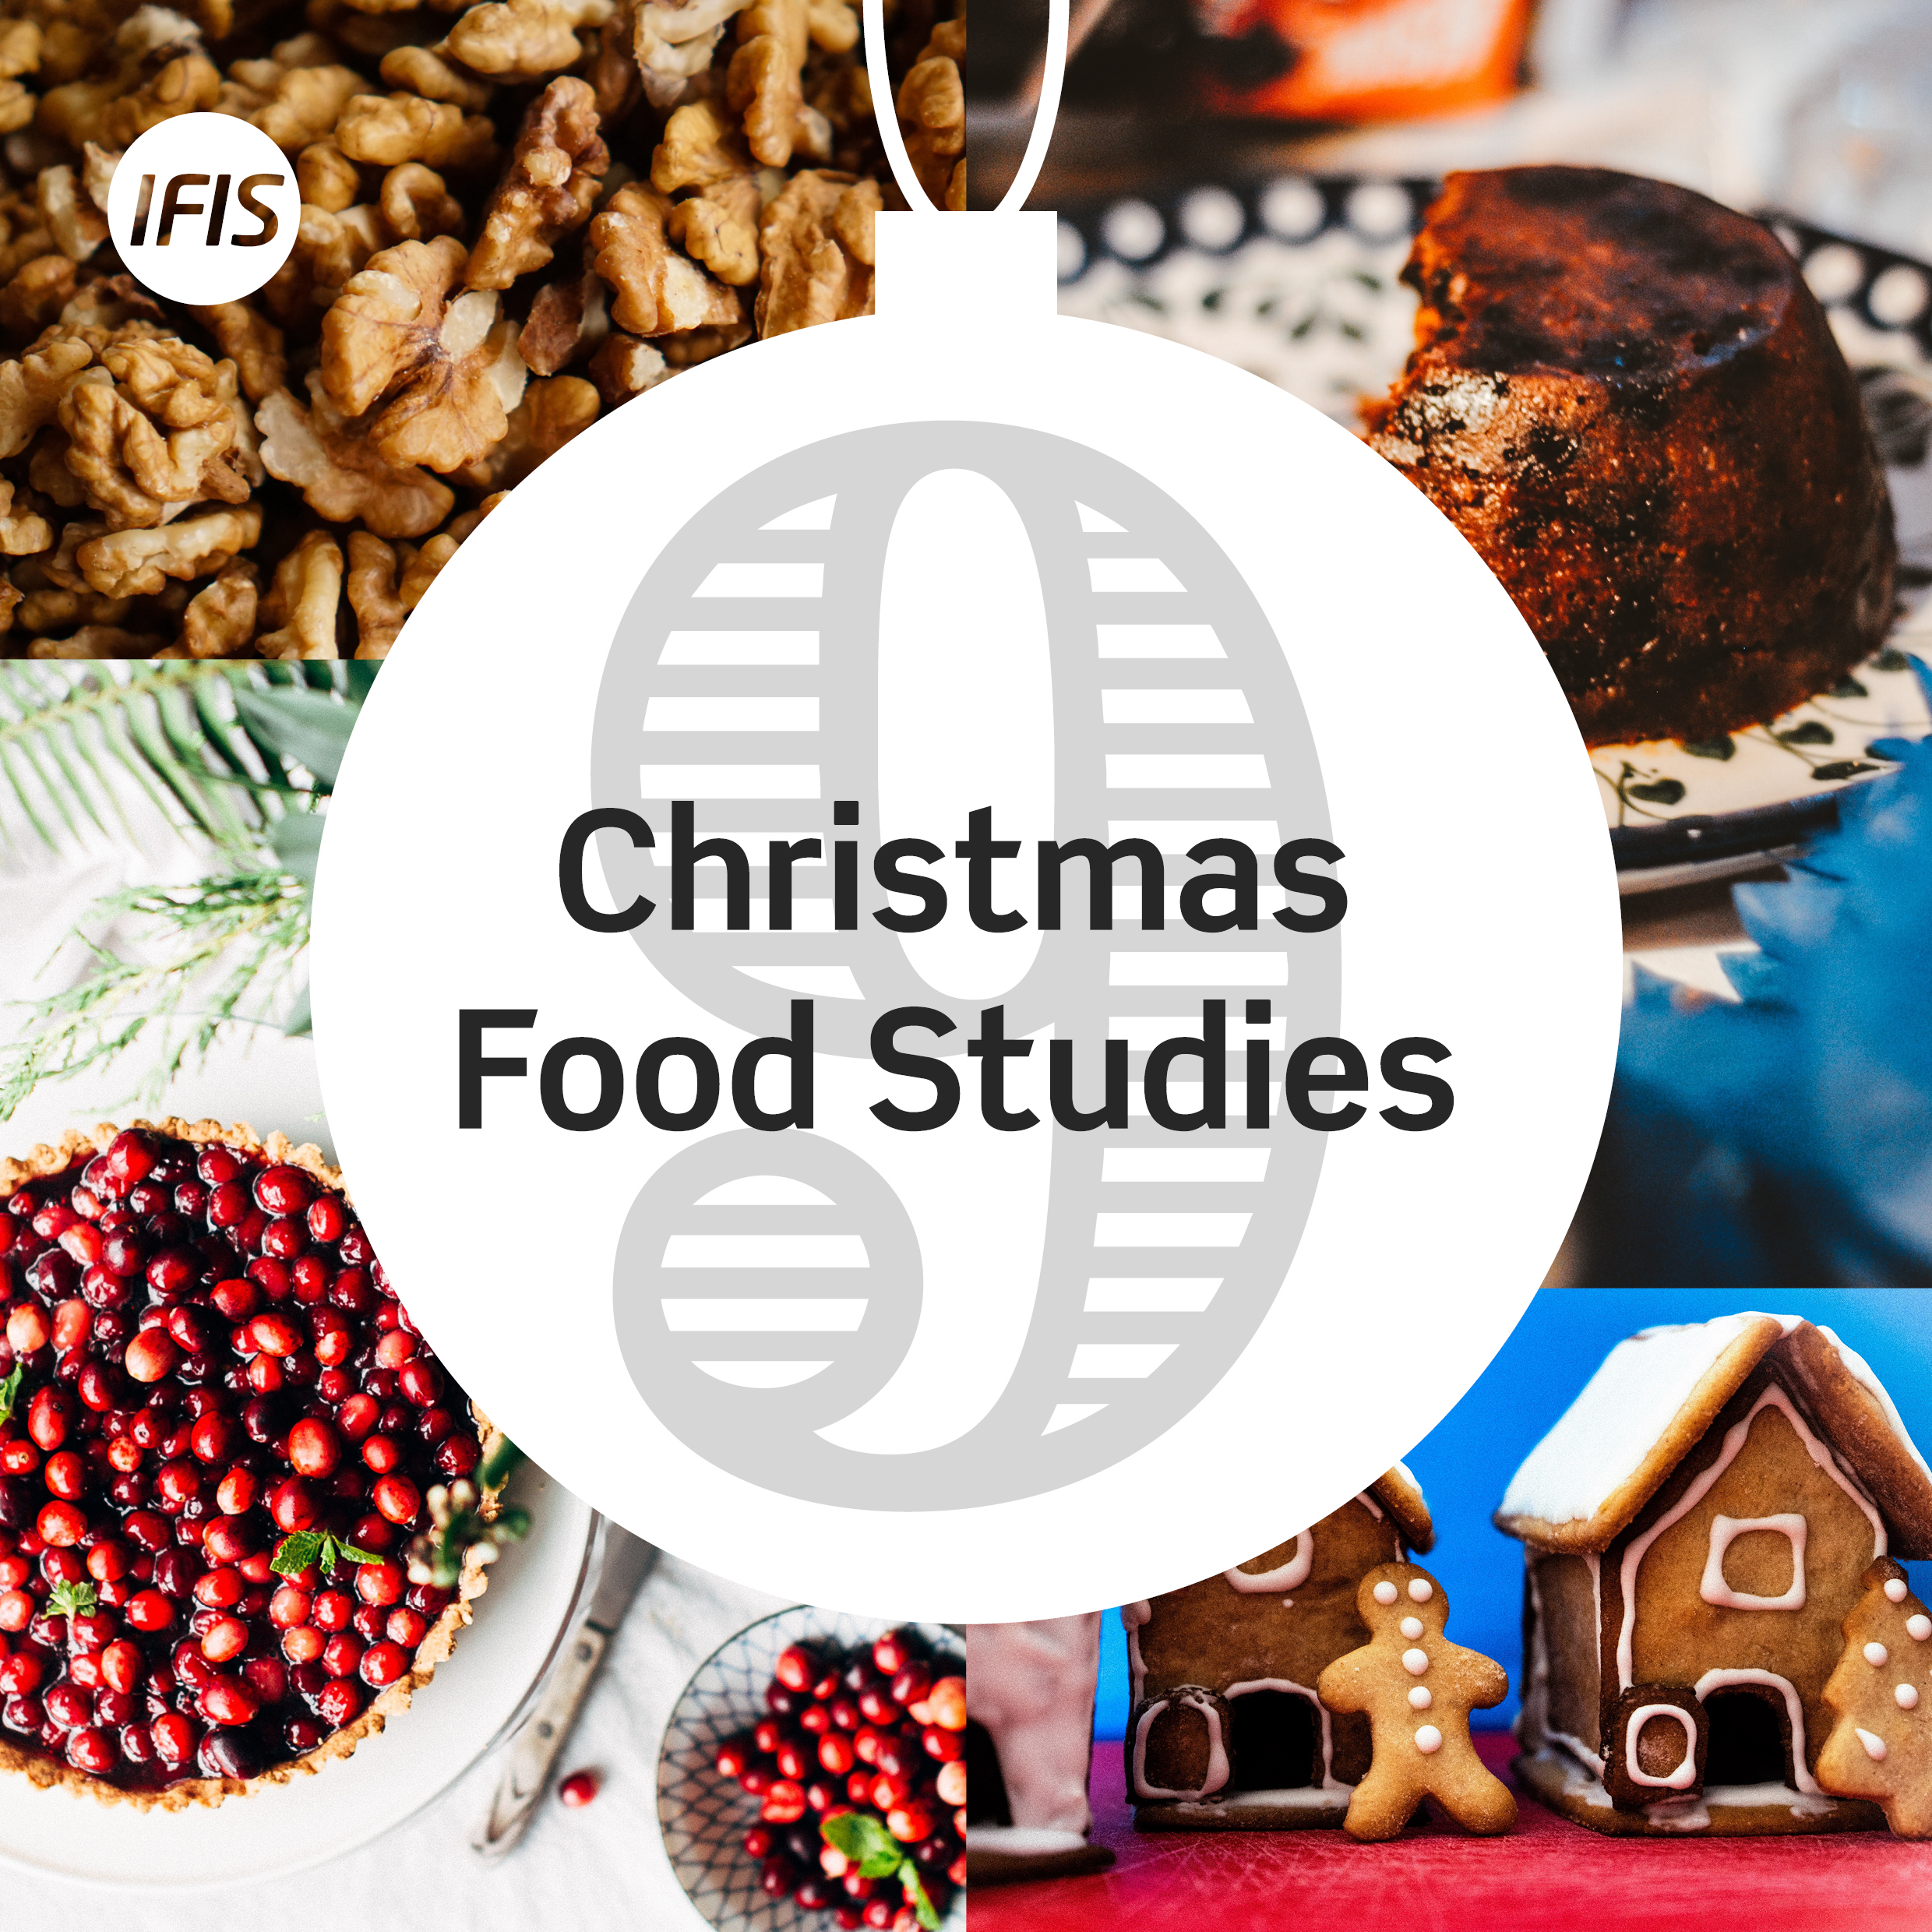 FSTA Christmas food studies blog post social media graphic-1